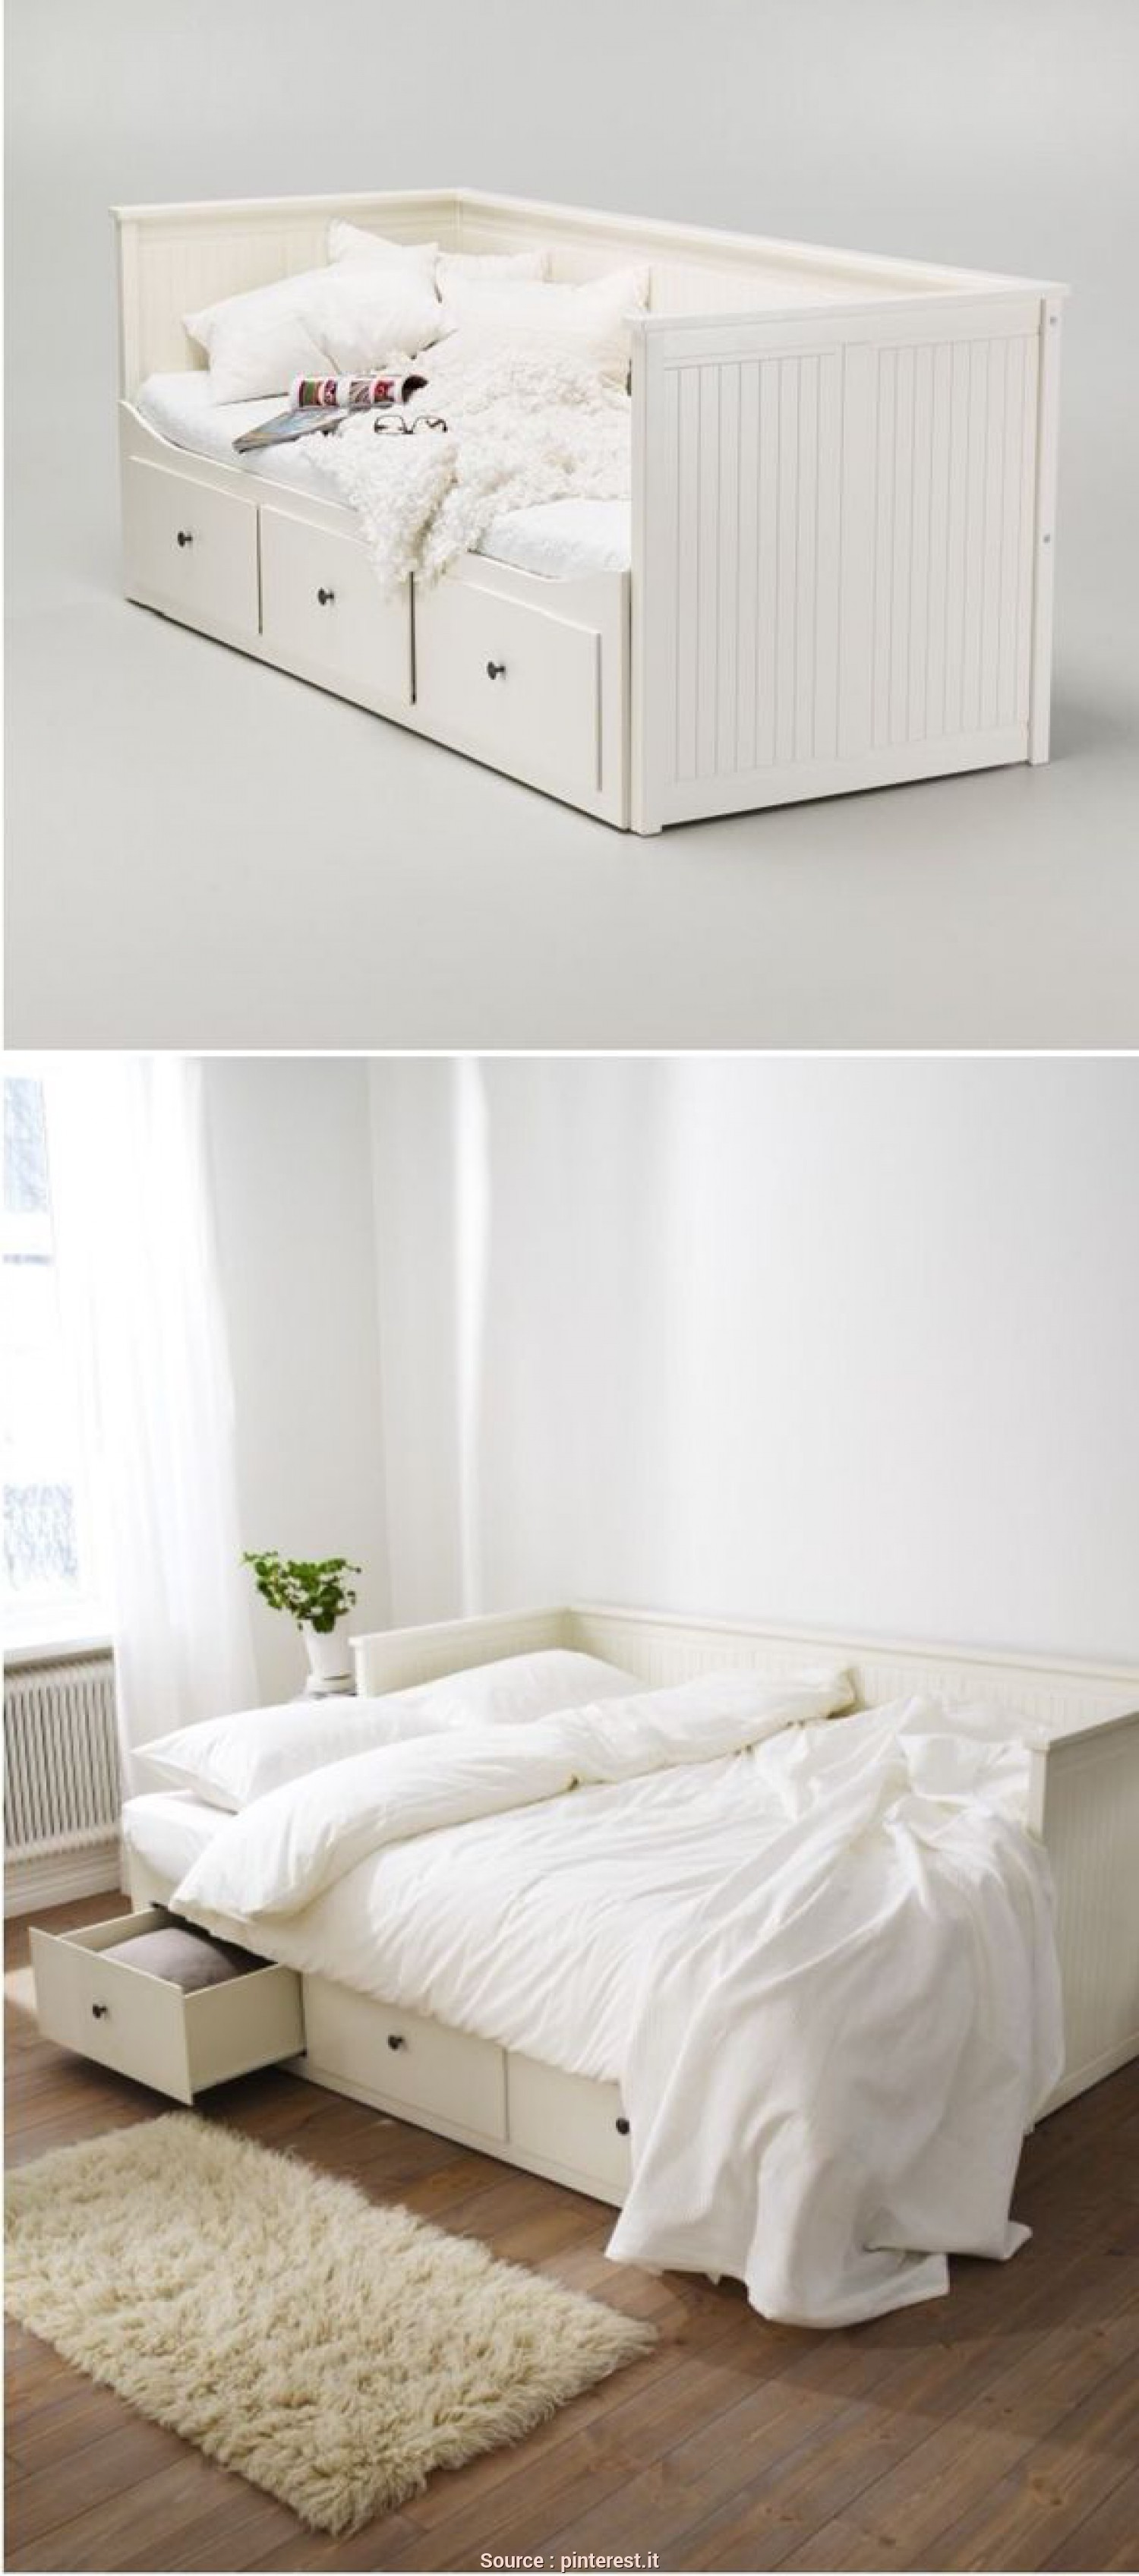 Letto Divano Ikea Hemnes, Divertente Another Office/Guest Room Solution IKEA Hemnes, Bed Camera, Divano Letto, Divano